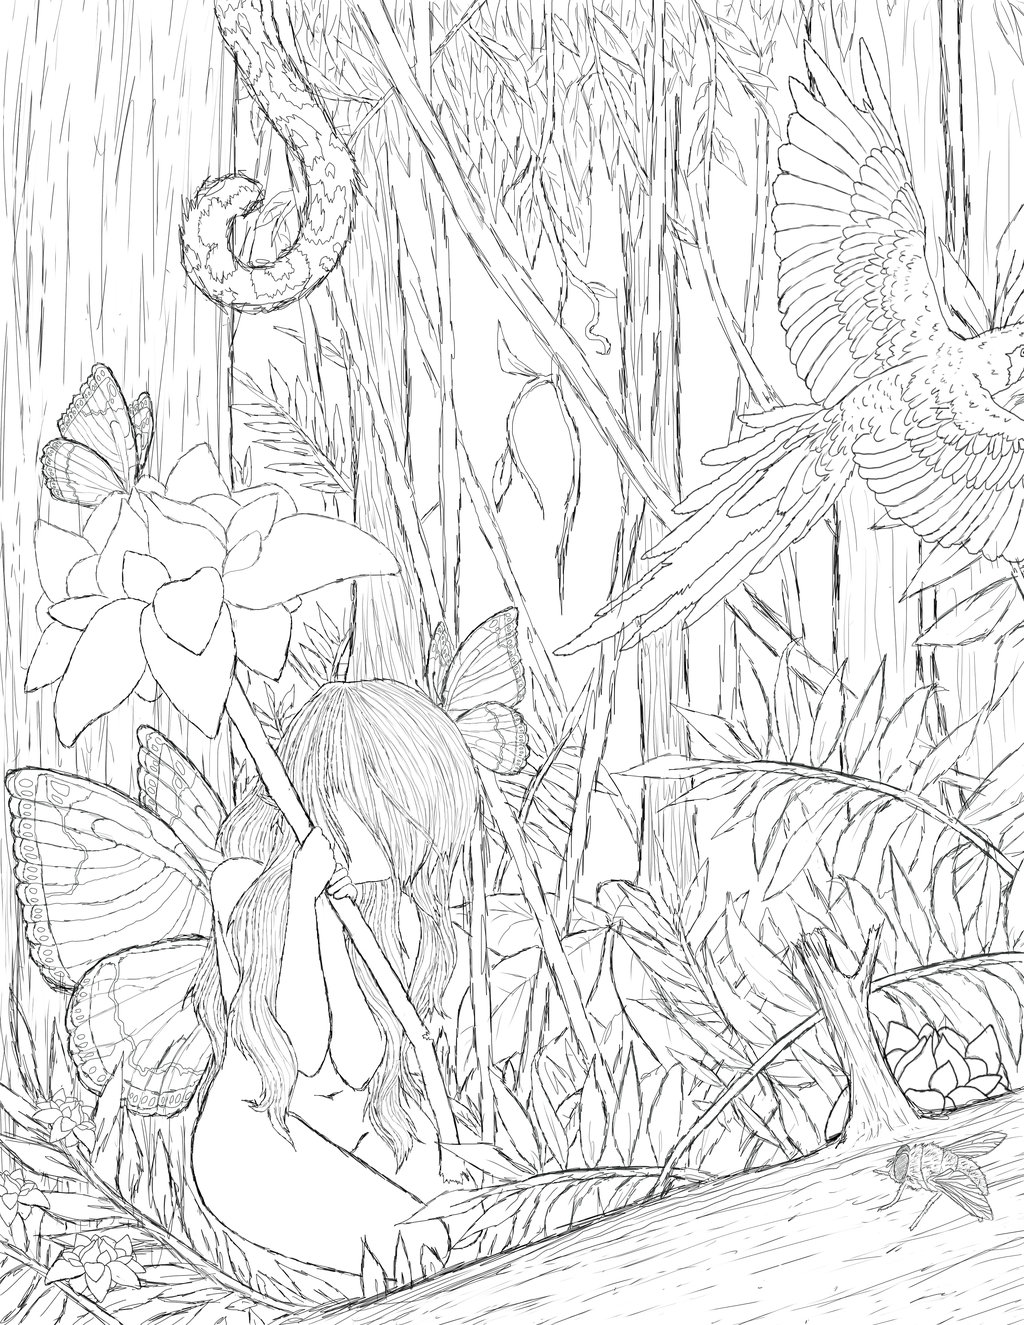 Amazon Rainforest Drawing at GetDrawings.com | Free for personal use ...